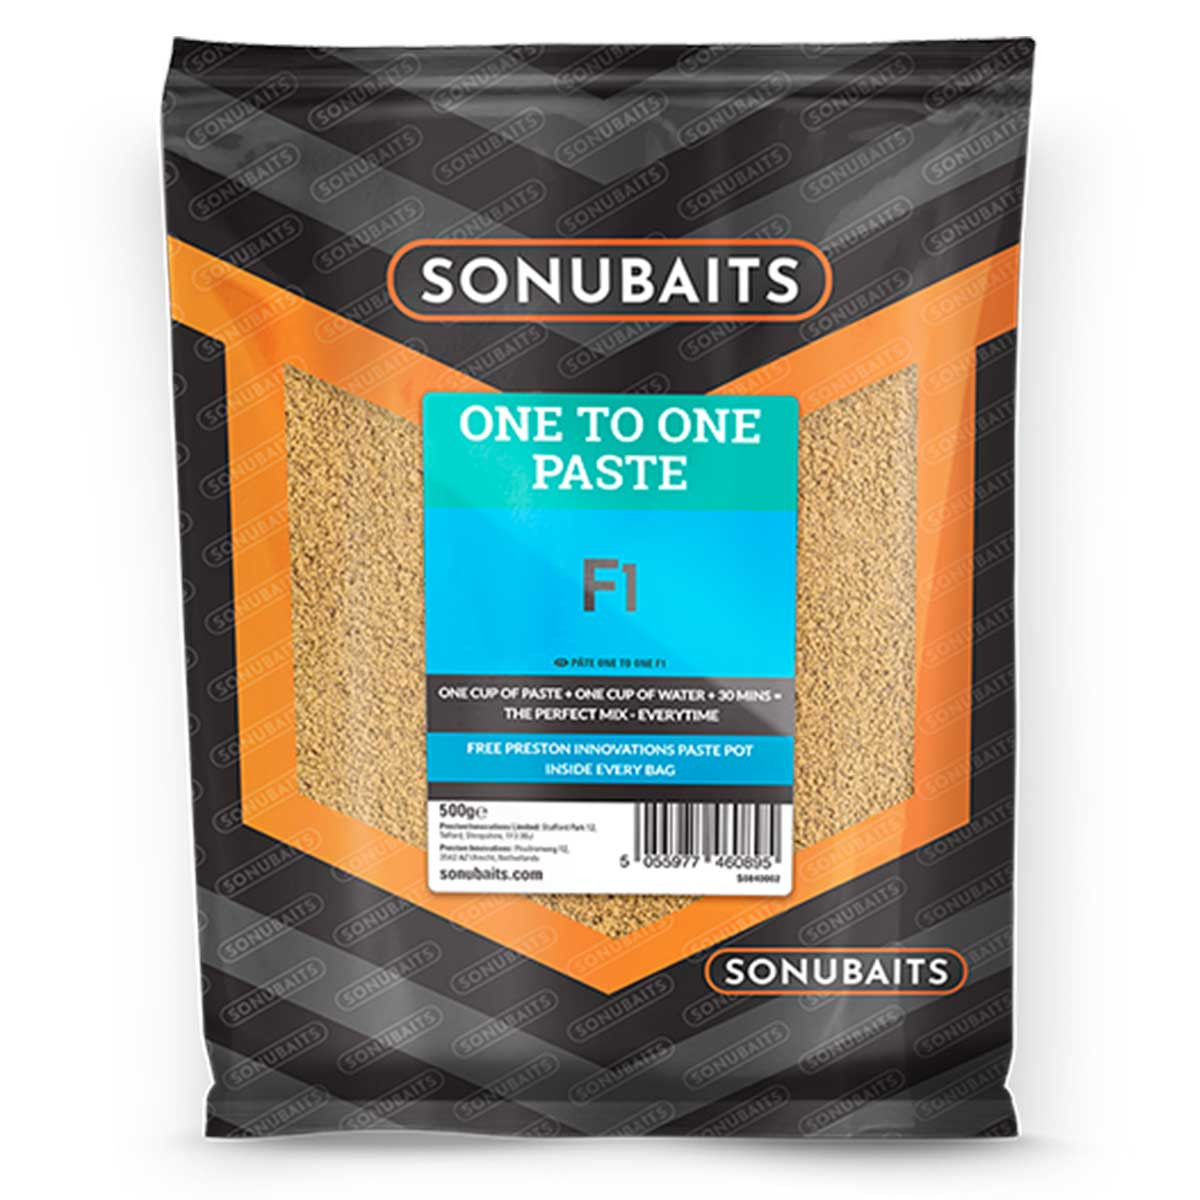 Pâte Sonubaits F1 One to One - 500gr